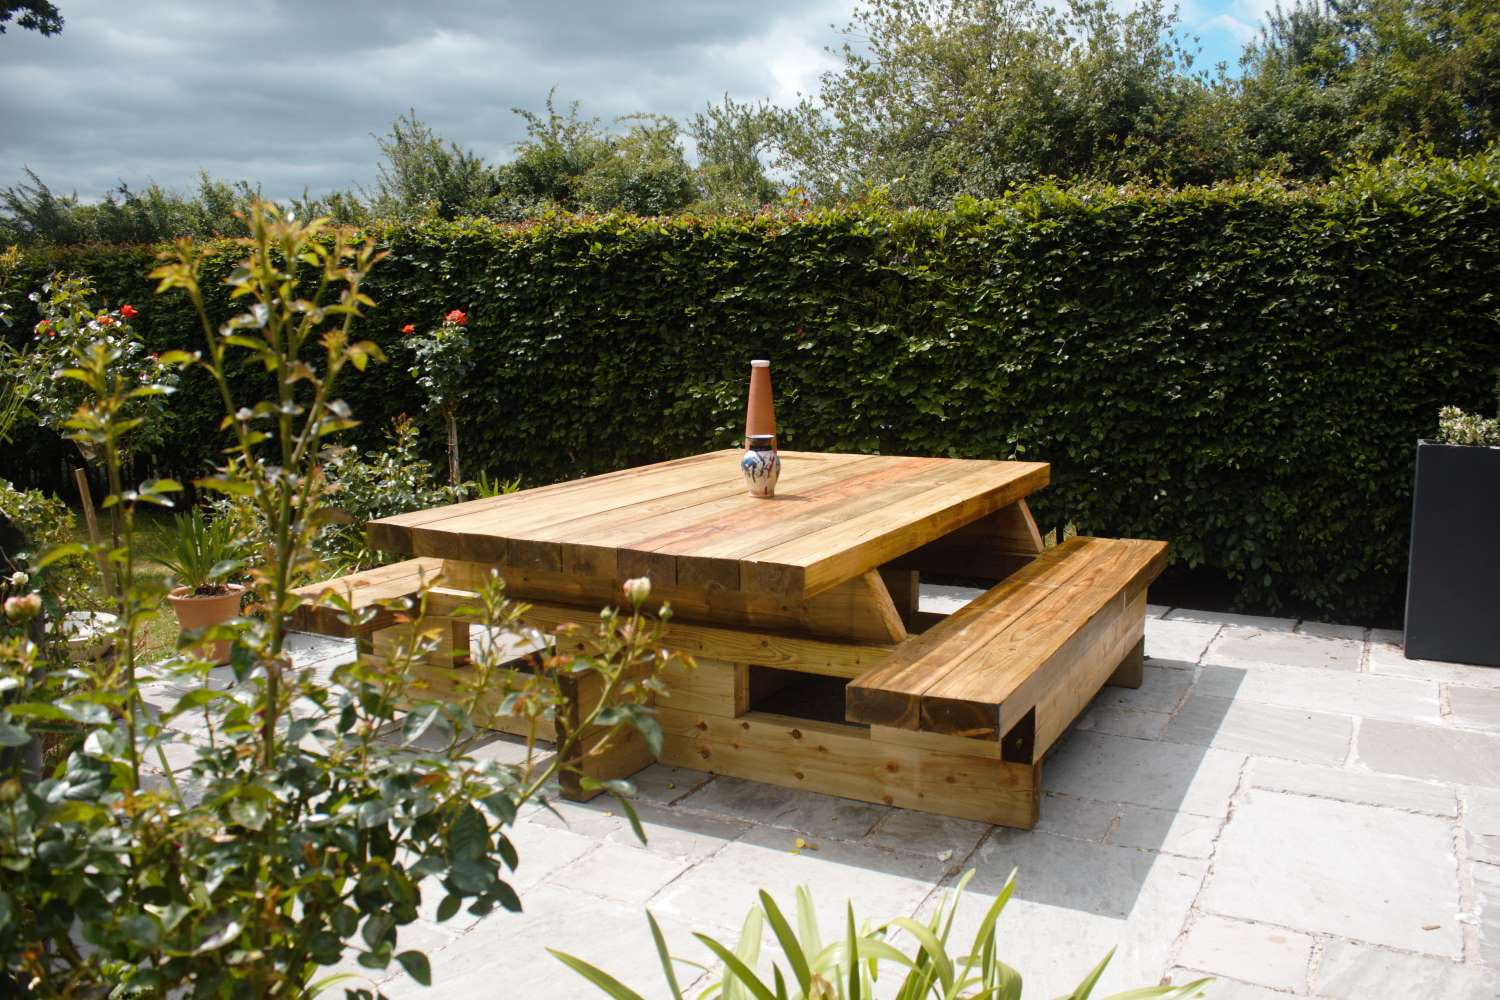 Outdoor Living structures - Bespoke Outdoors Living Ltd on Outdoor Living Ltd id=96566